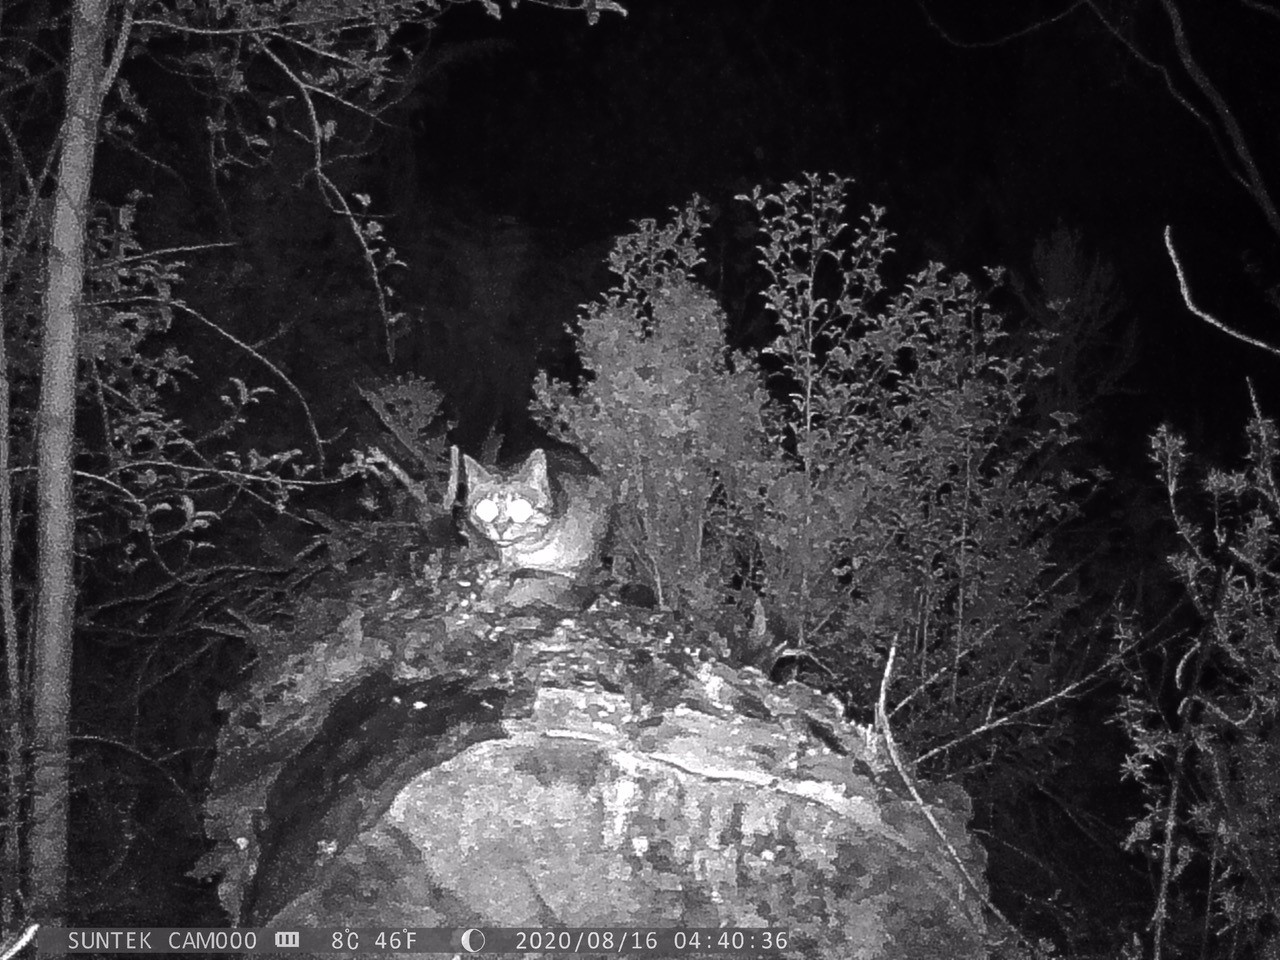 A feral cat sitting on a log in the dark of night